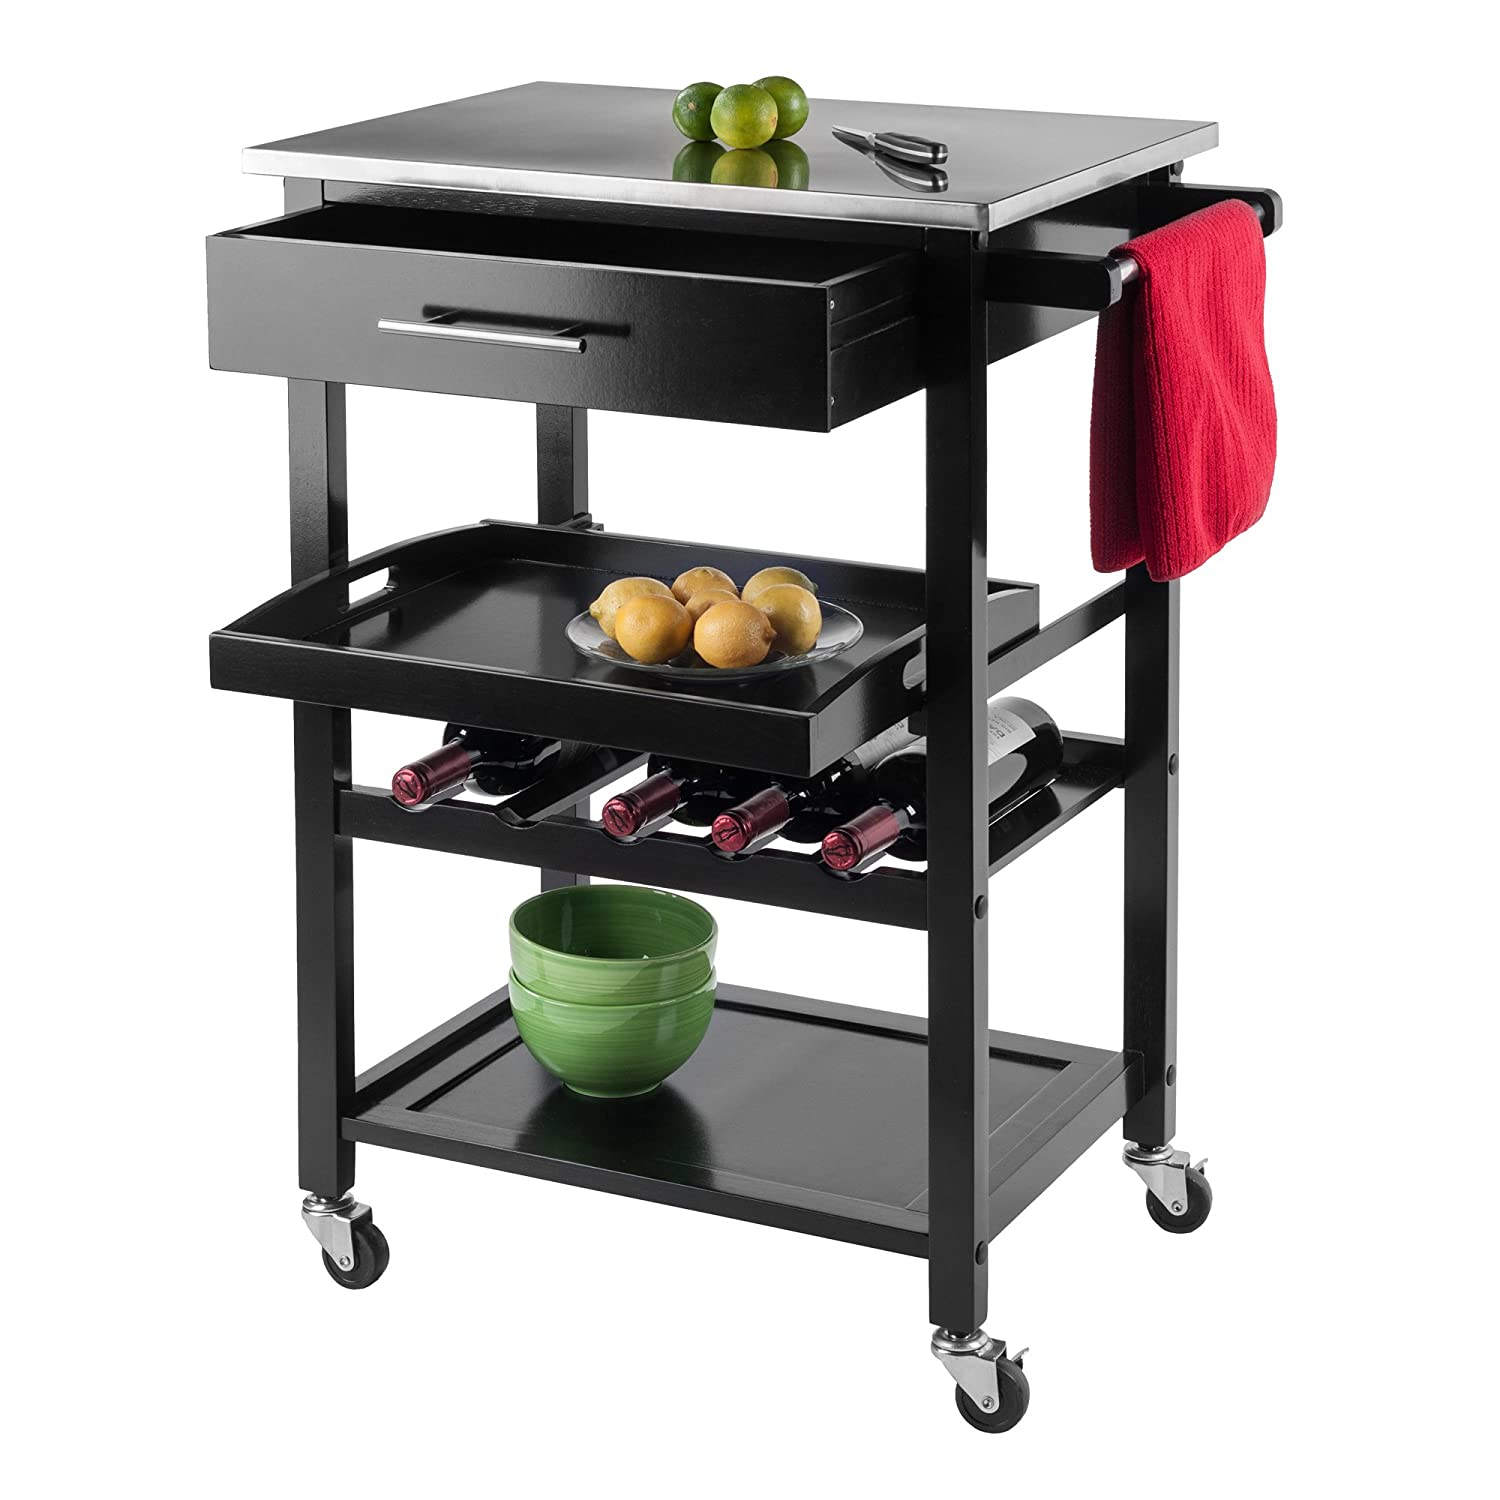 Amazon.com - Winsome Wood Stainless Steel Anthony Kitchen Cart ...